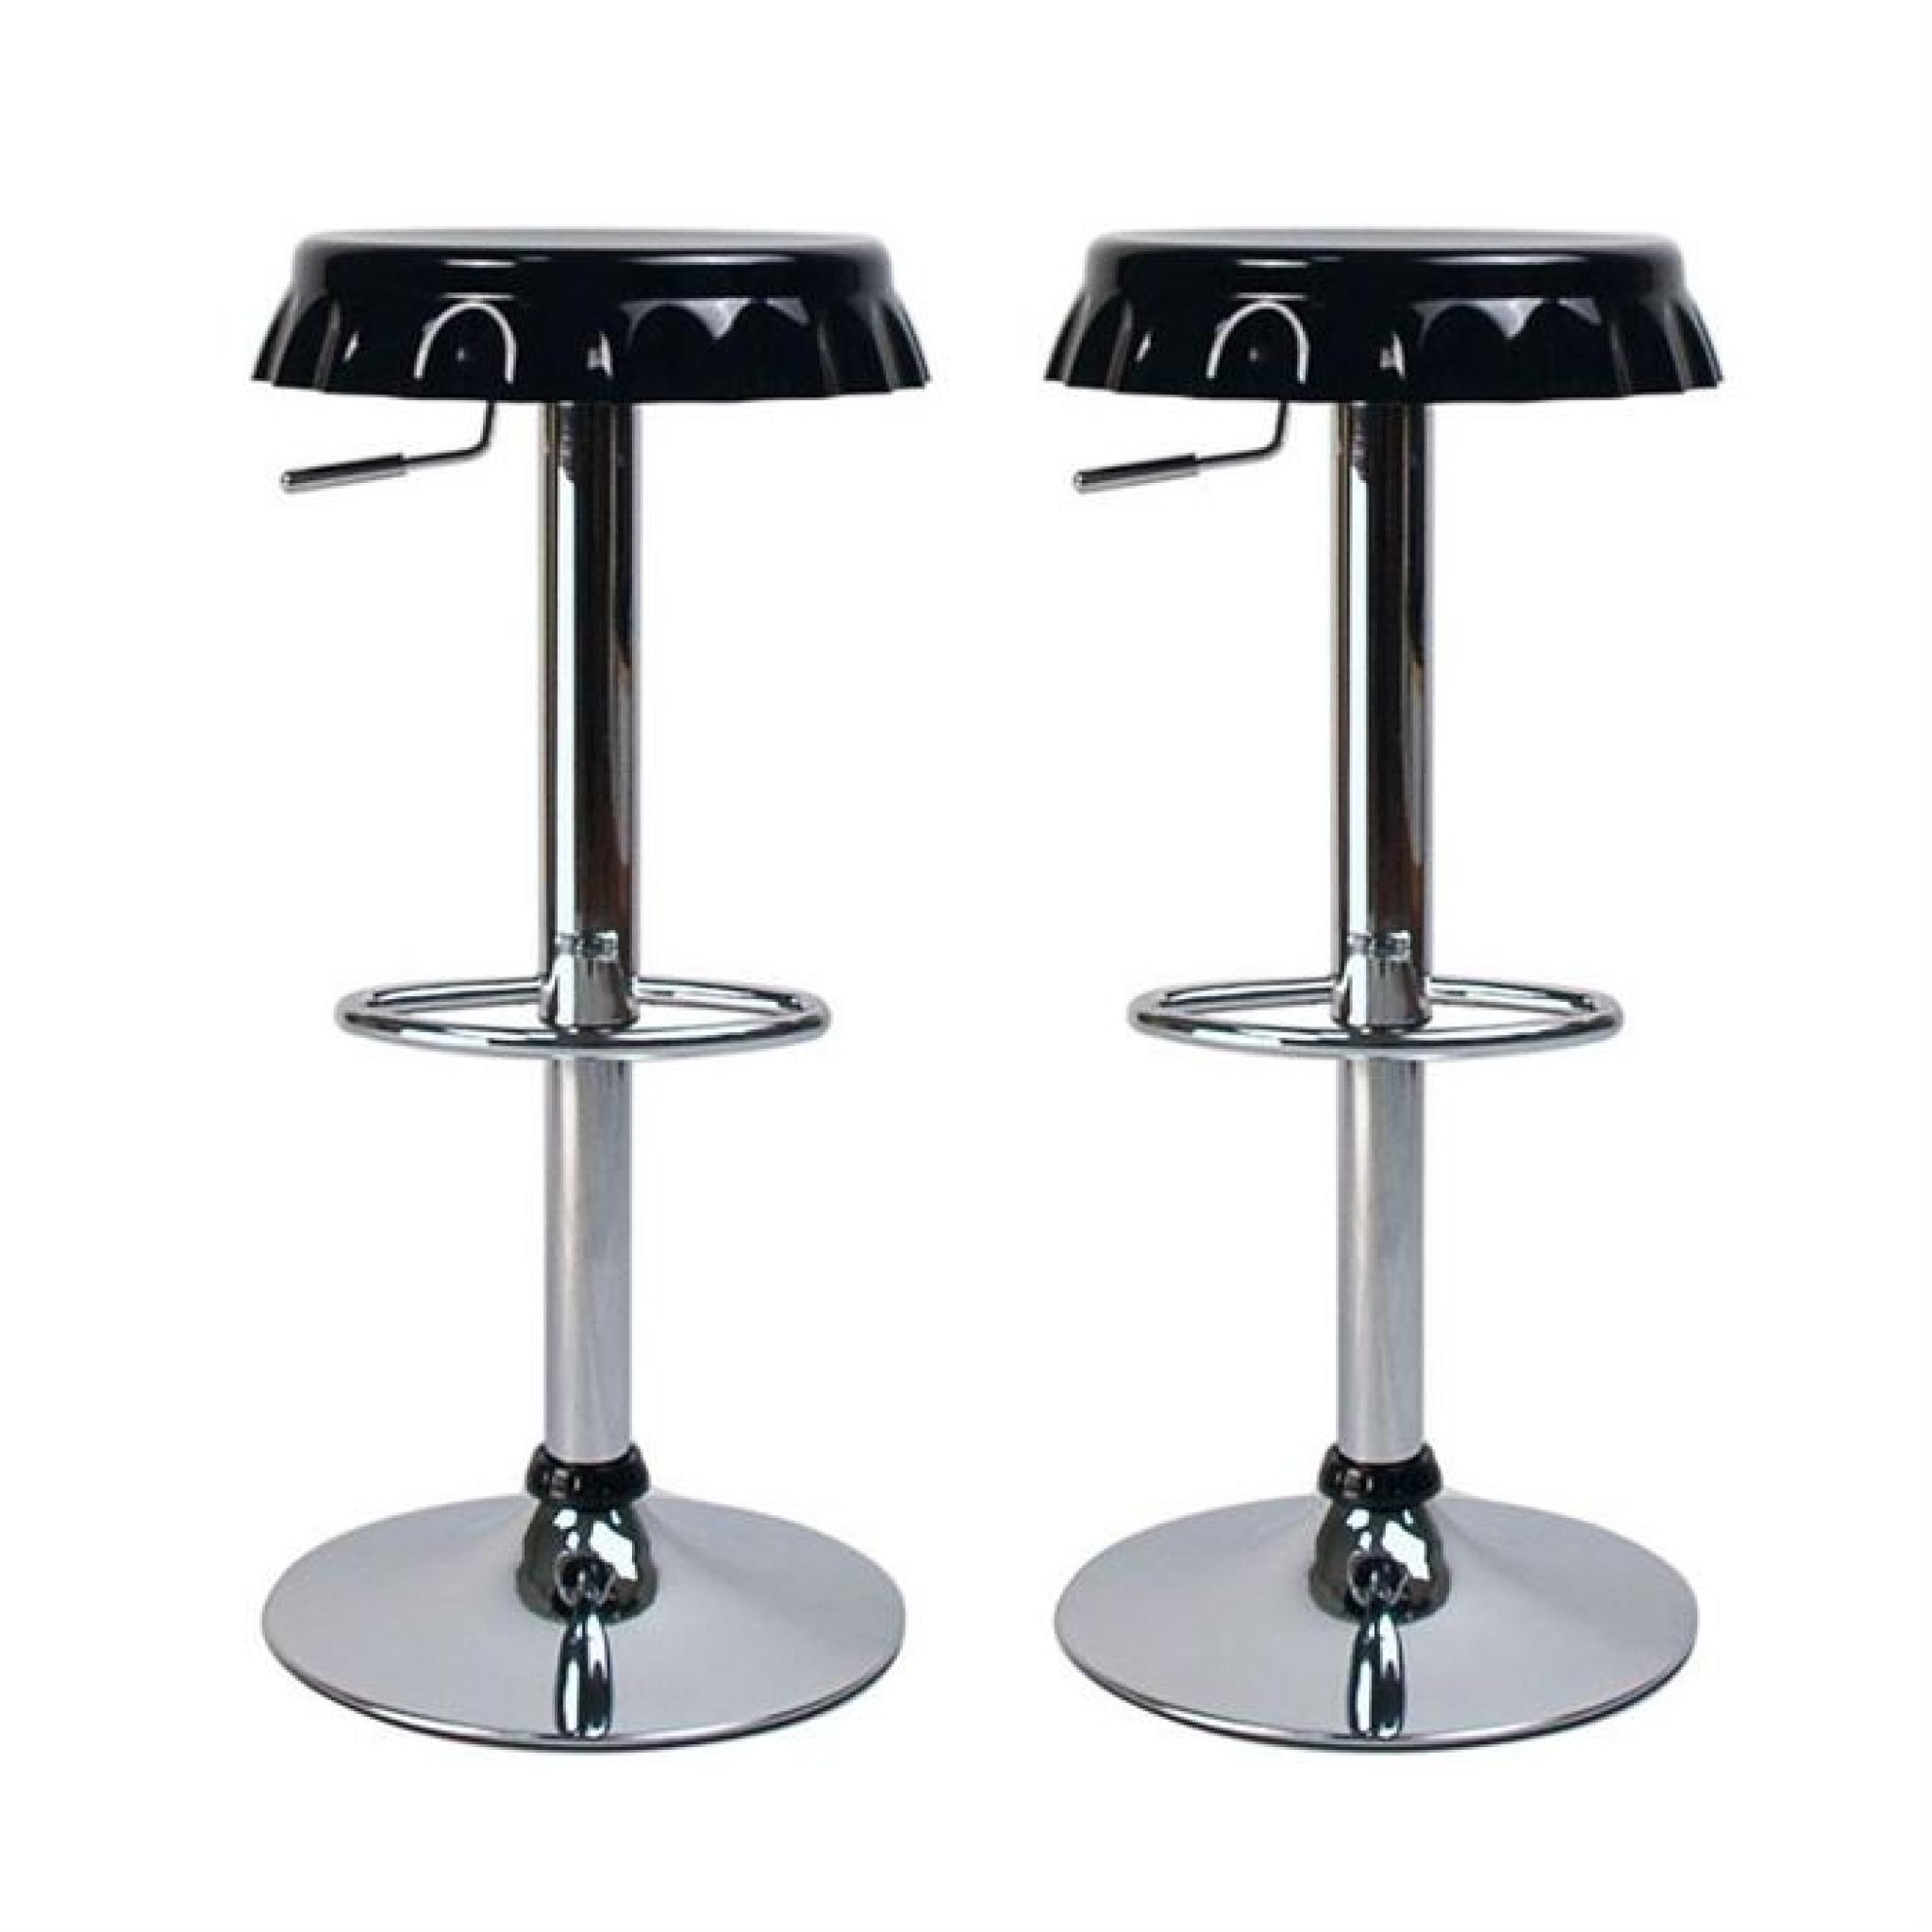 tabourets de bar cuisine noir capsule lot de 2 achat. Black Bedroom Furniture Sets. Home Design Ideas